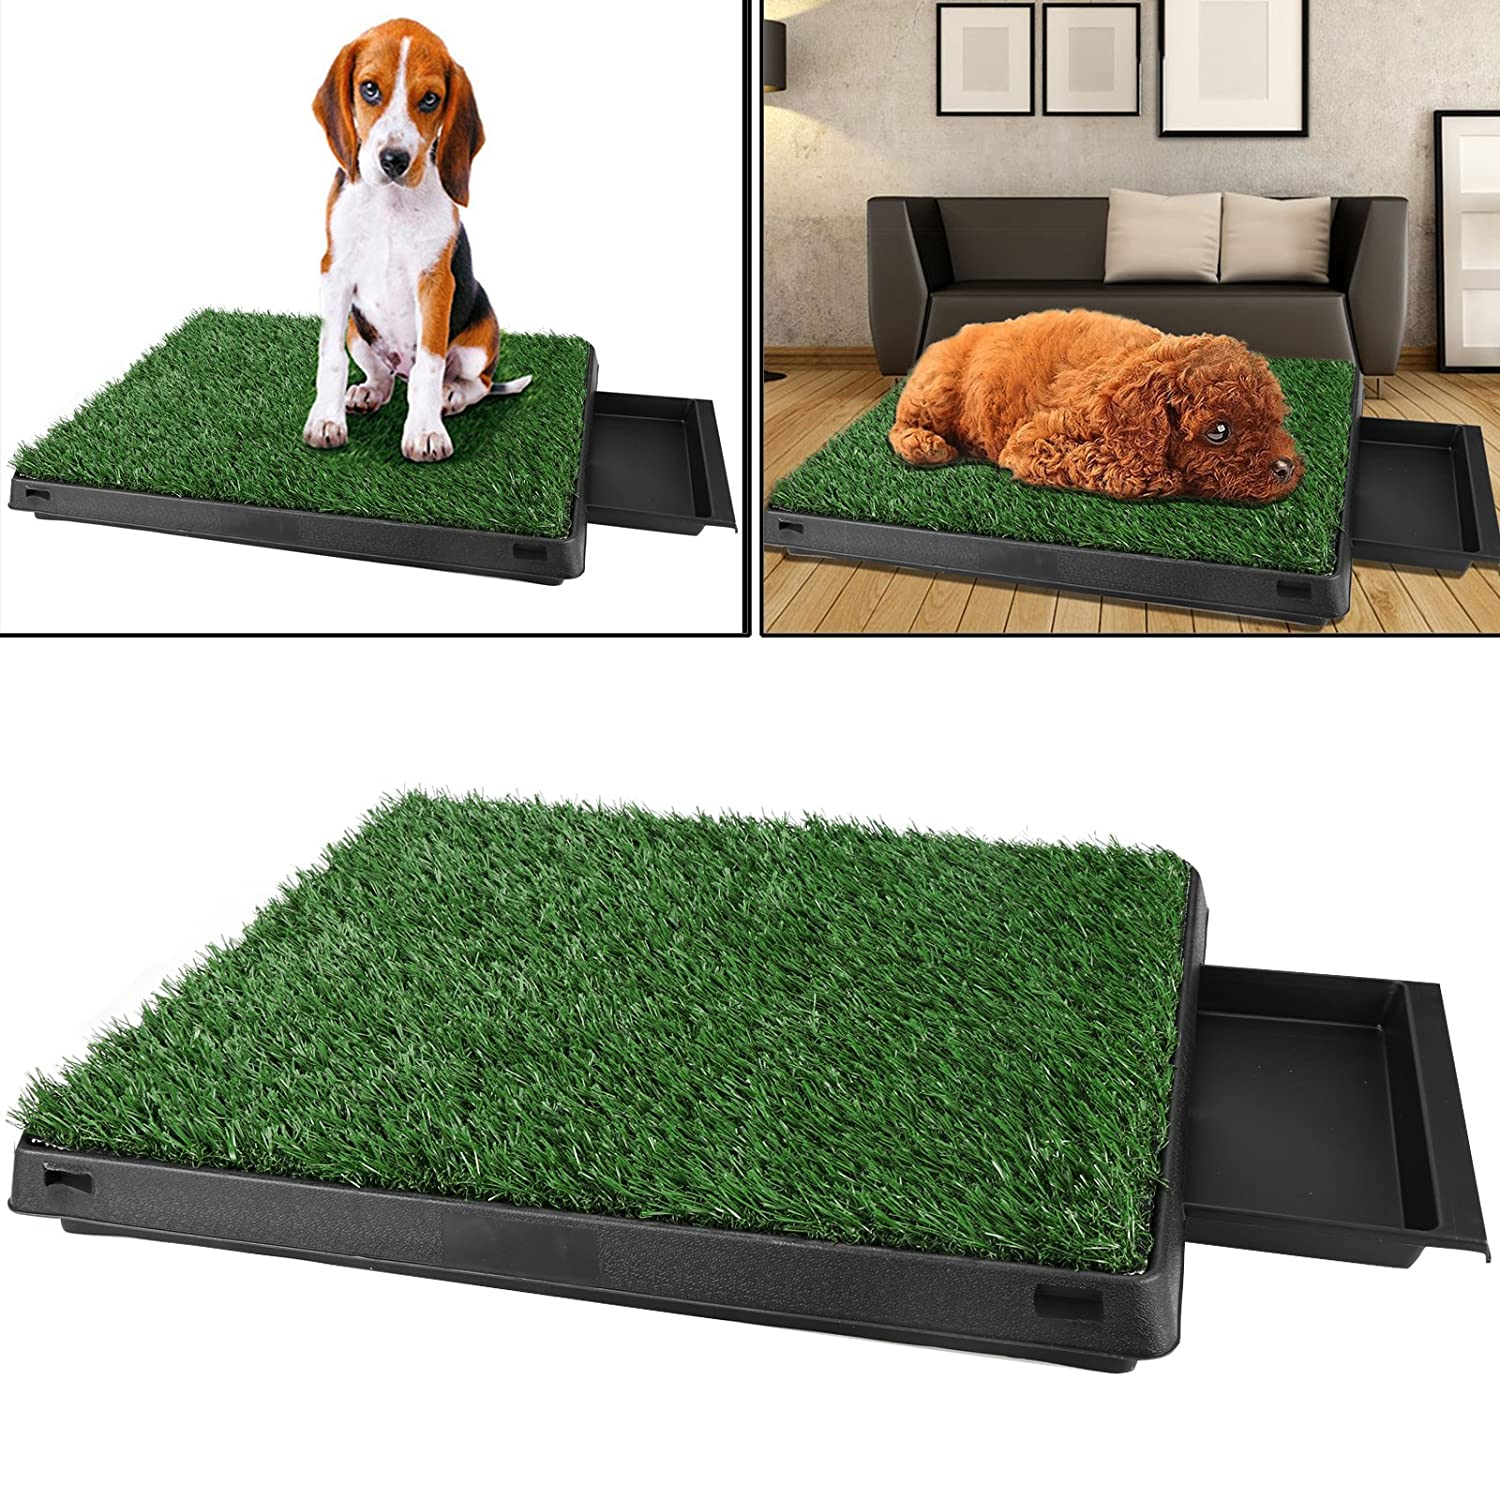 Amazon.com : Homdox Dog Potty Pad Puppy Pads Indoor Potty Patch Dog Grass  Mat Training Pad Pet Potty Dog Training Pads Non Toxic Synthetic Grass 24.6  X 19.5 ...